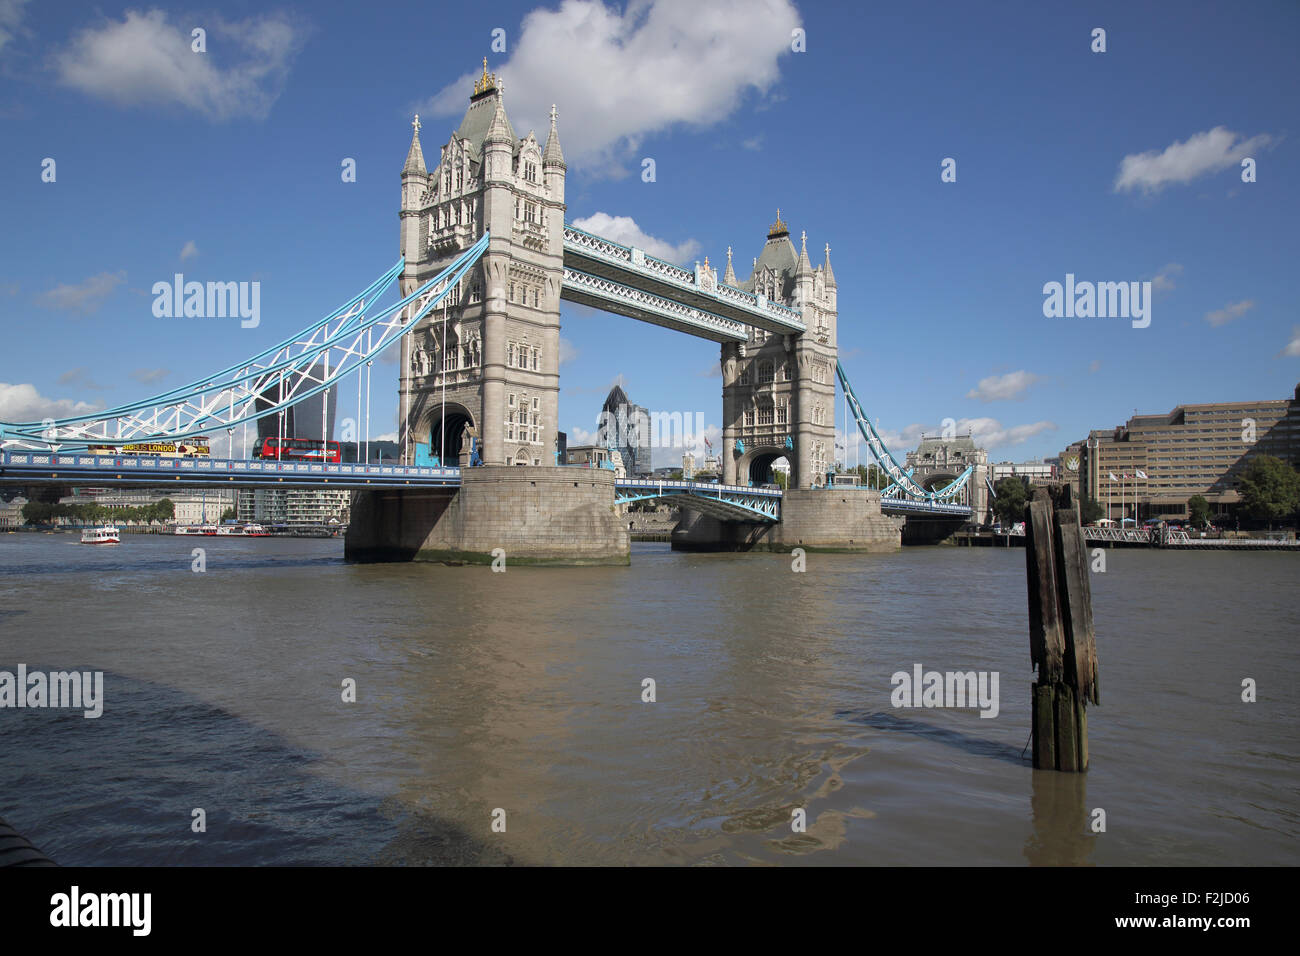 tower bridge crossing the river thames in  london england - Stock Image